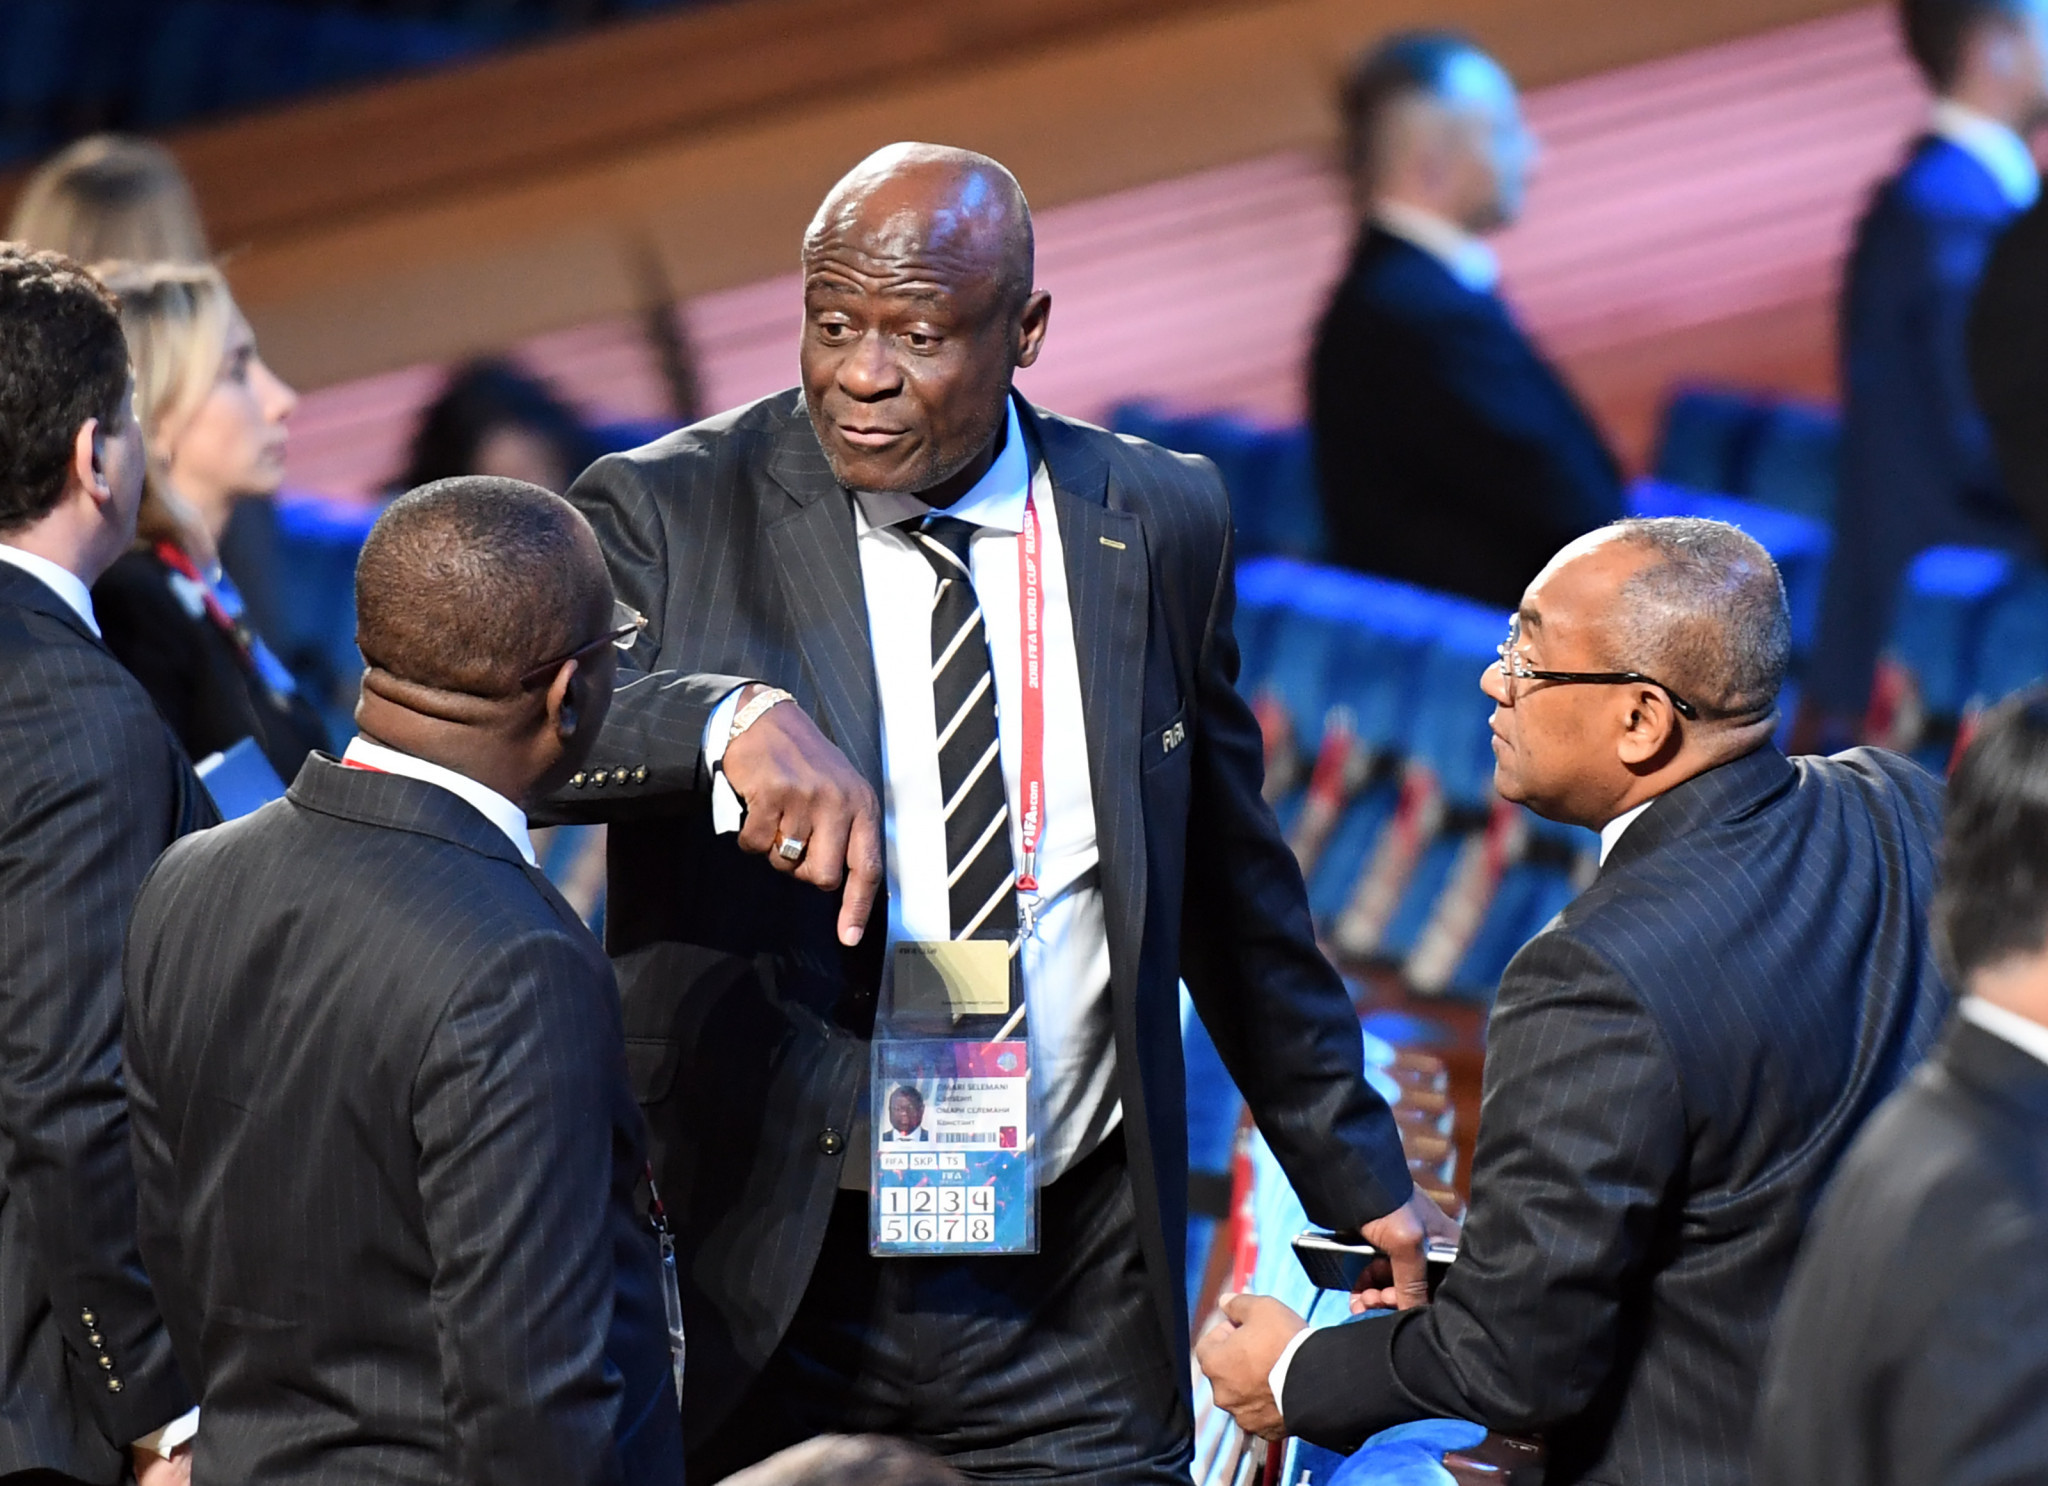 FIFA Council member claims DR Congo Sports Minister behind arrest on corruption charges after released from detention